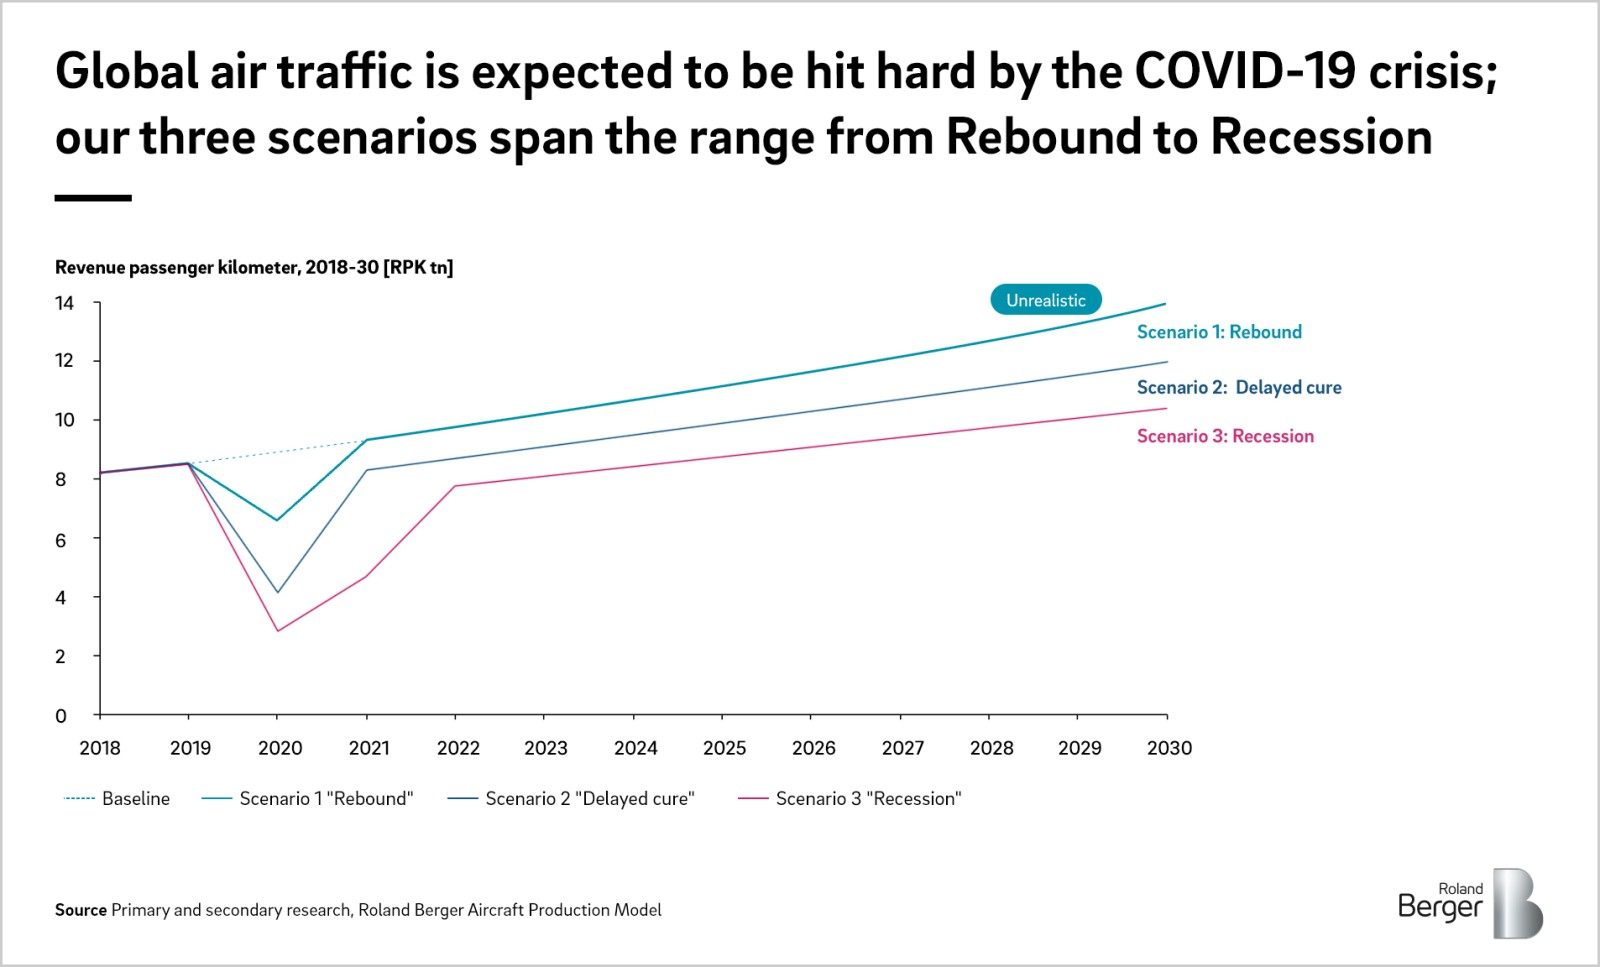 How the Covid-19 crisis is expected to impact the aerospace industry | Roland Berger